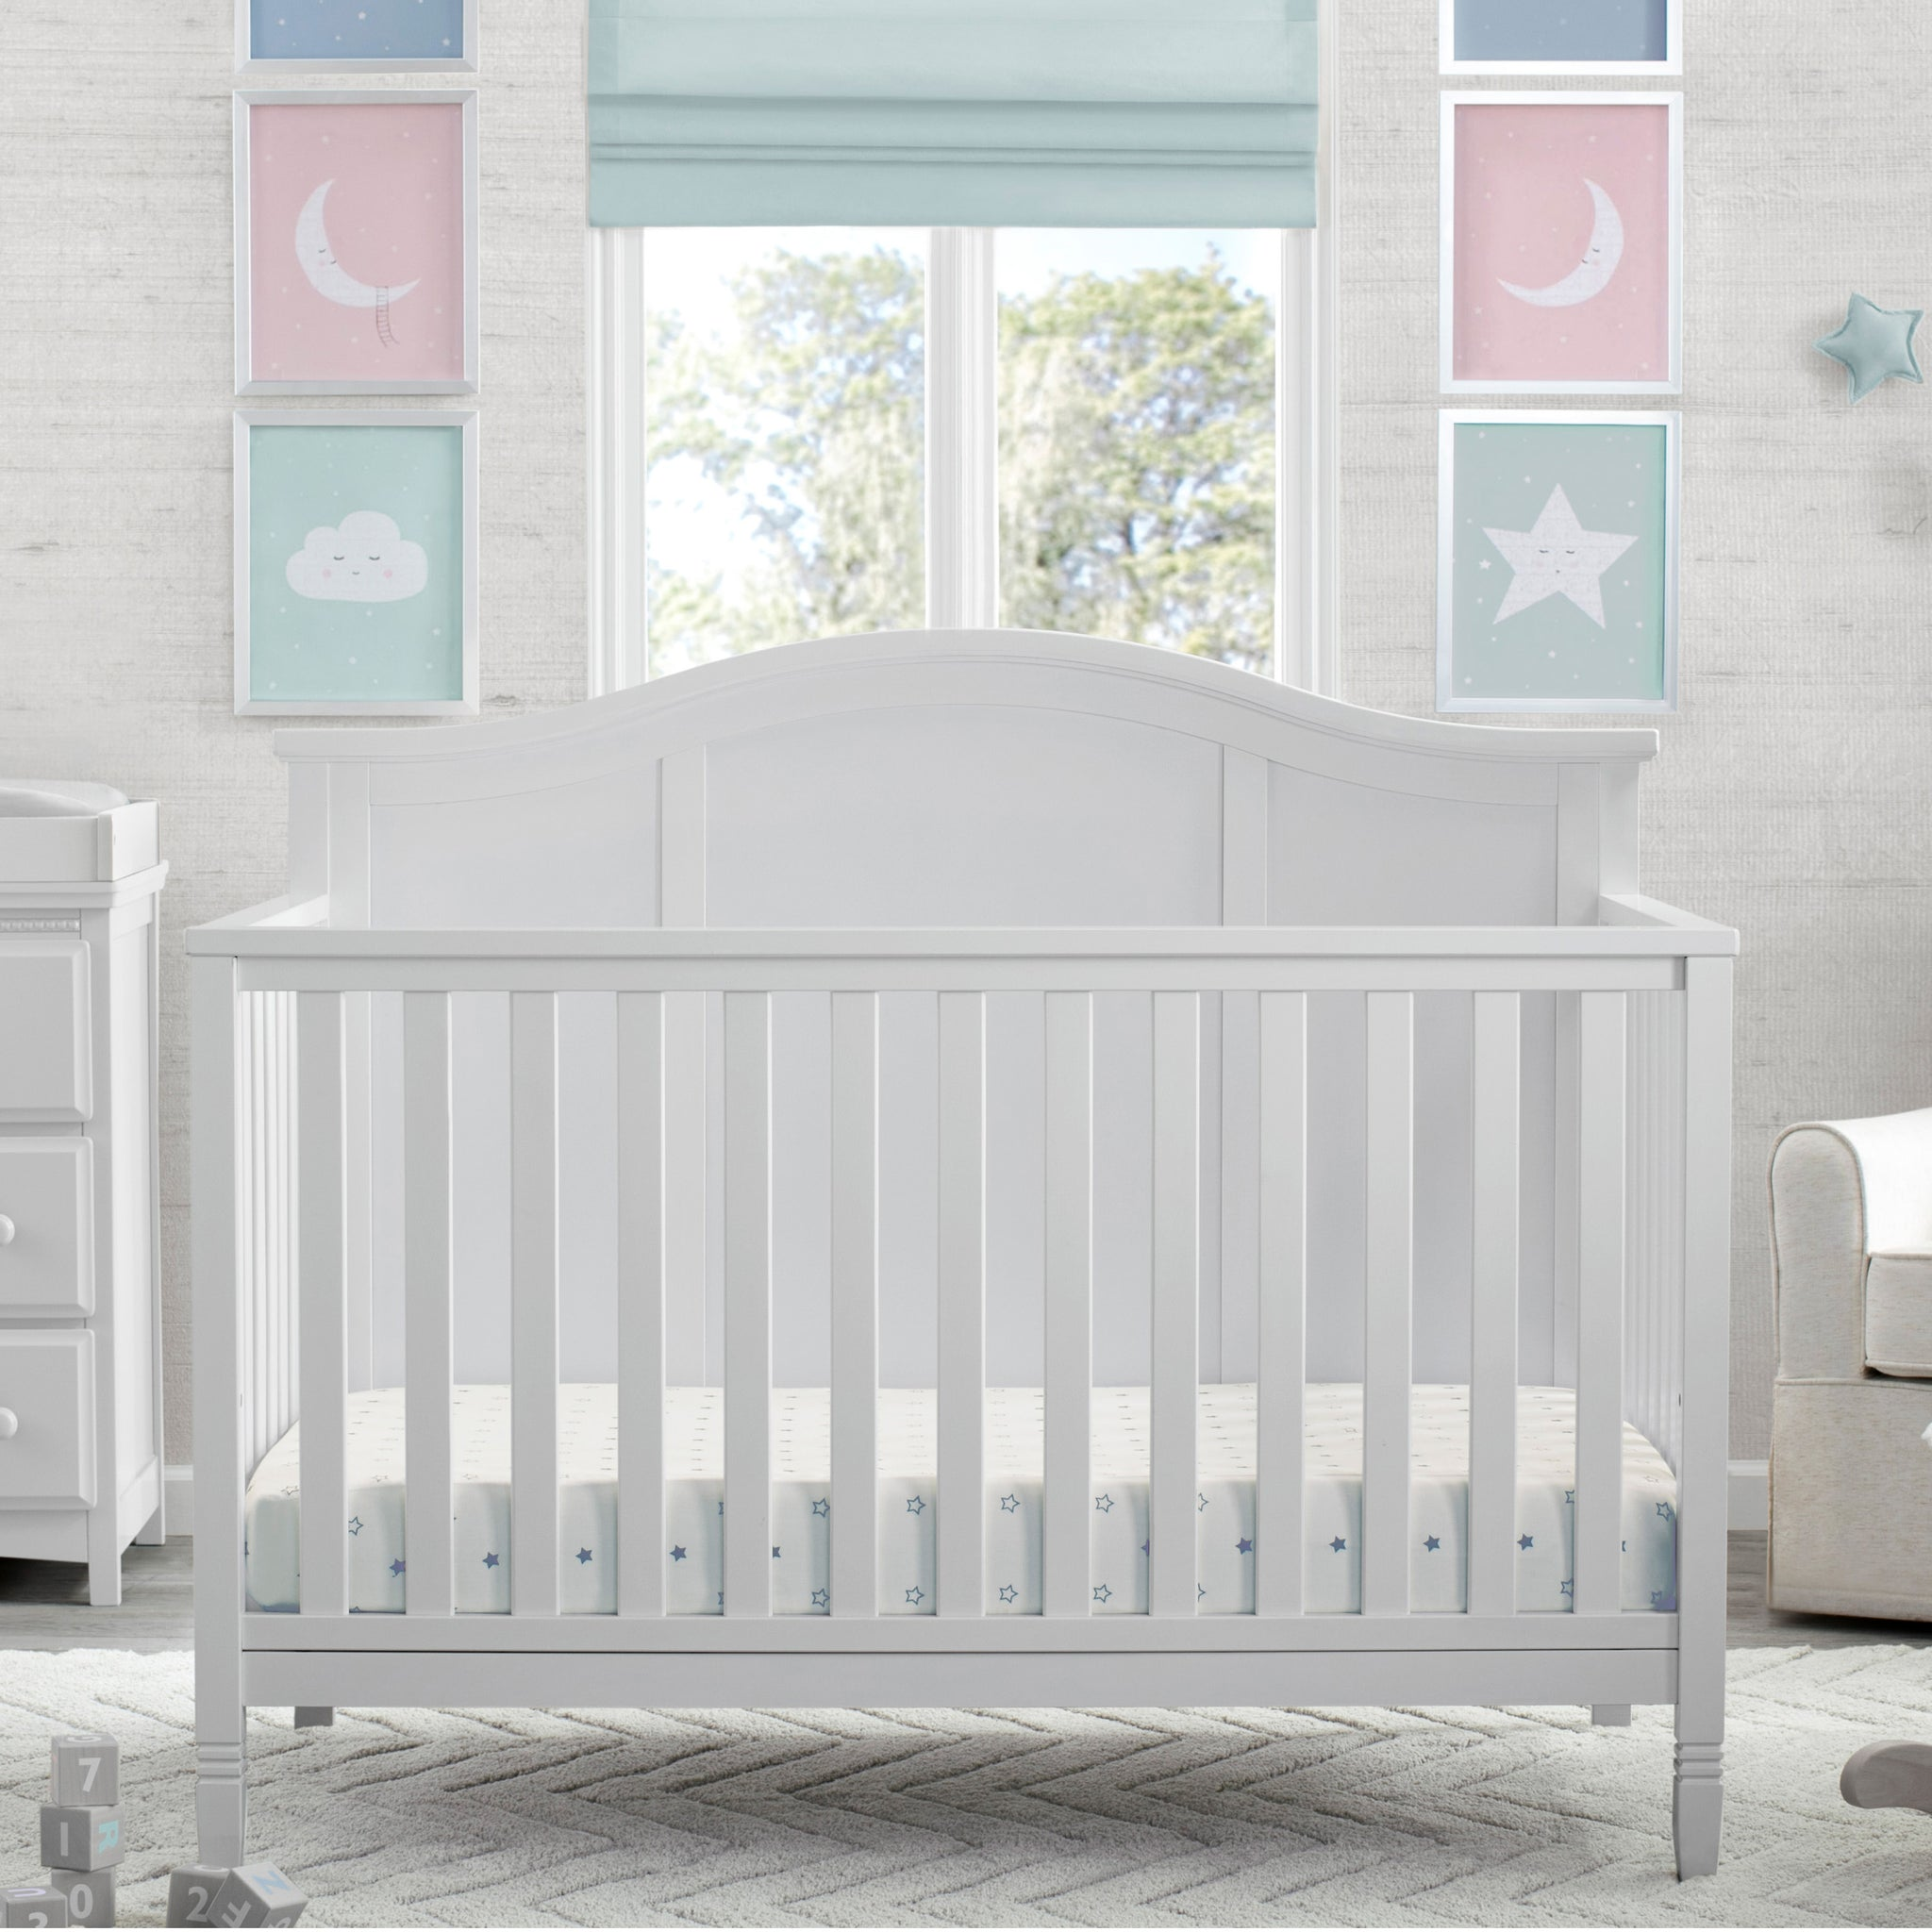 Madrid 4-in-1 Crib